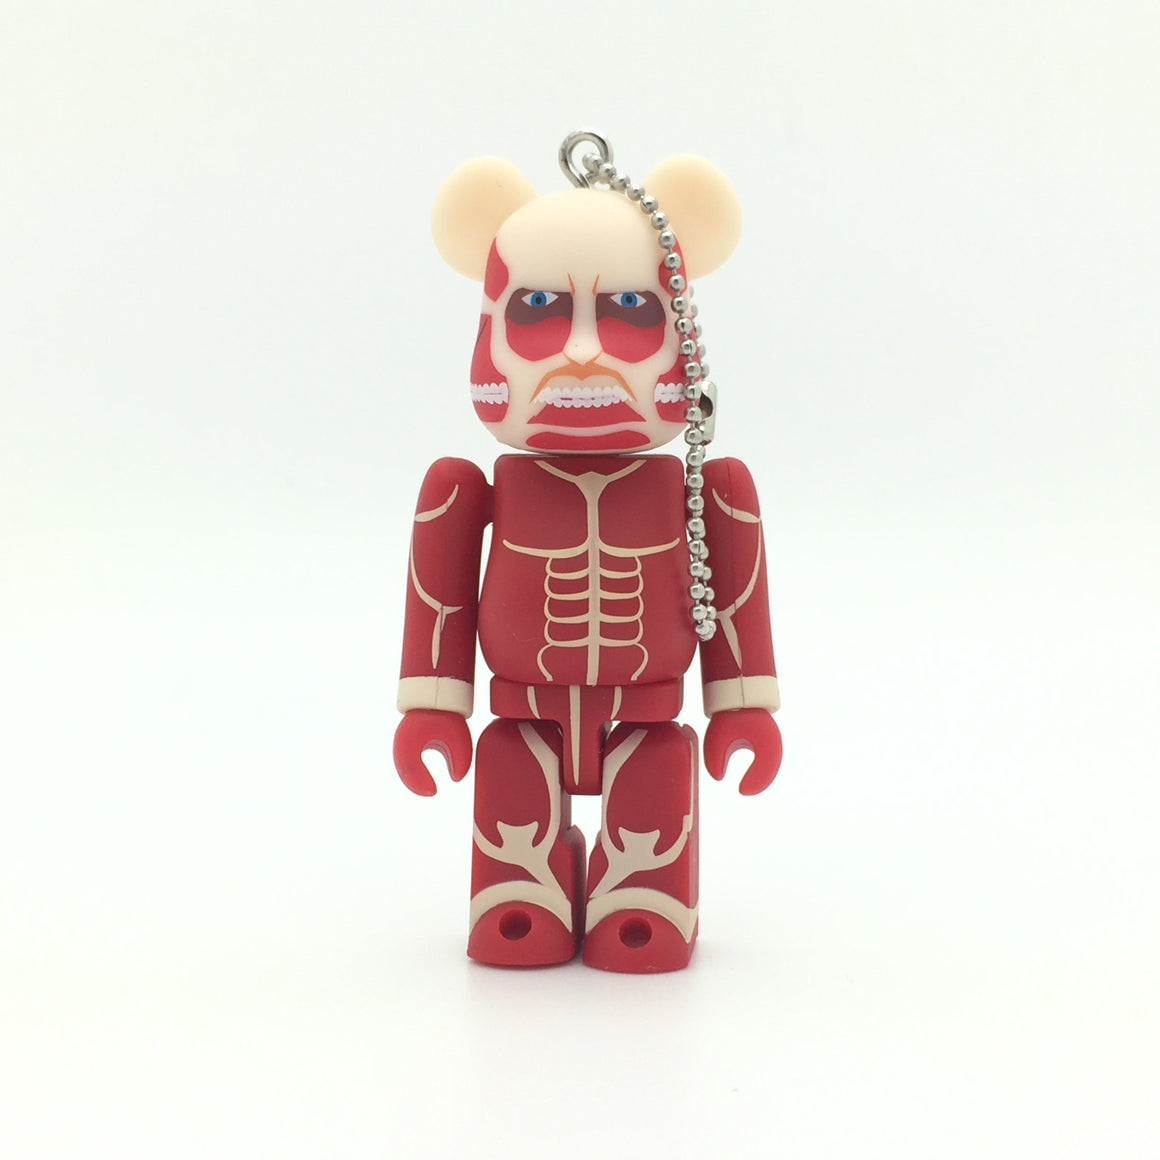 Attack On Titan x Bearbrick Blind Box Series by Medicom Toy